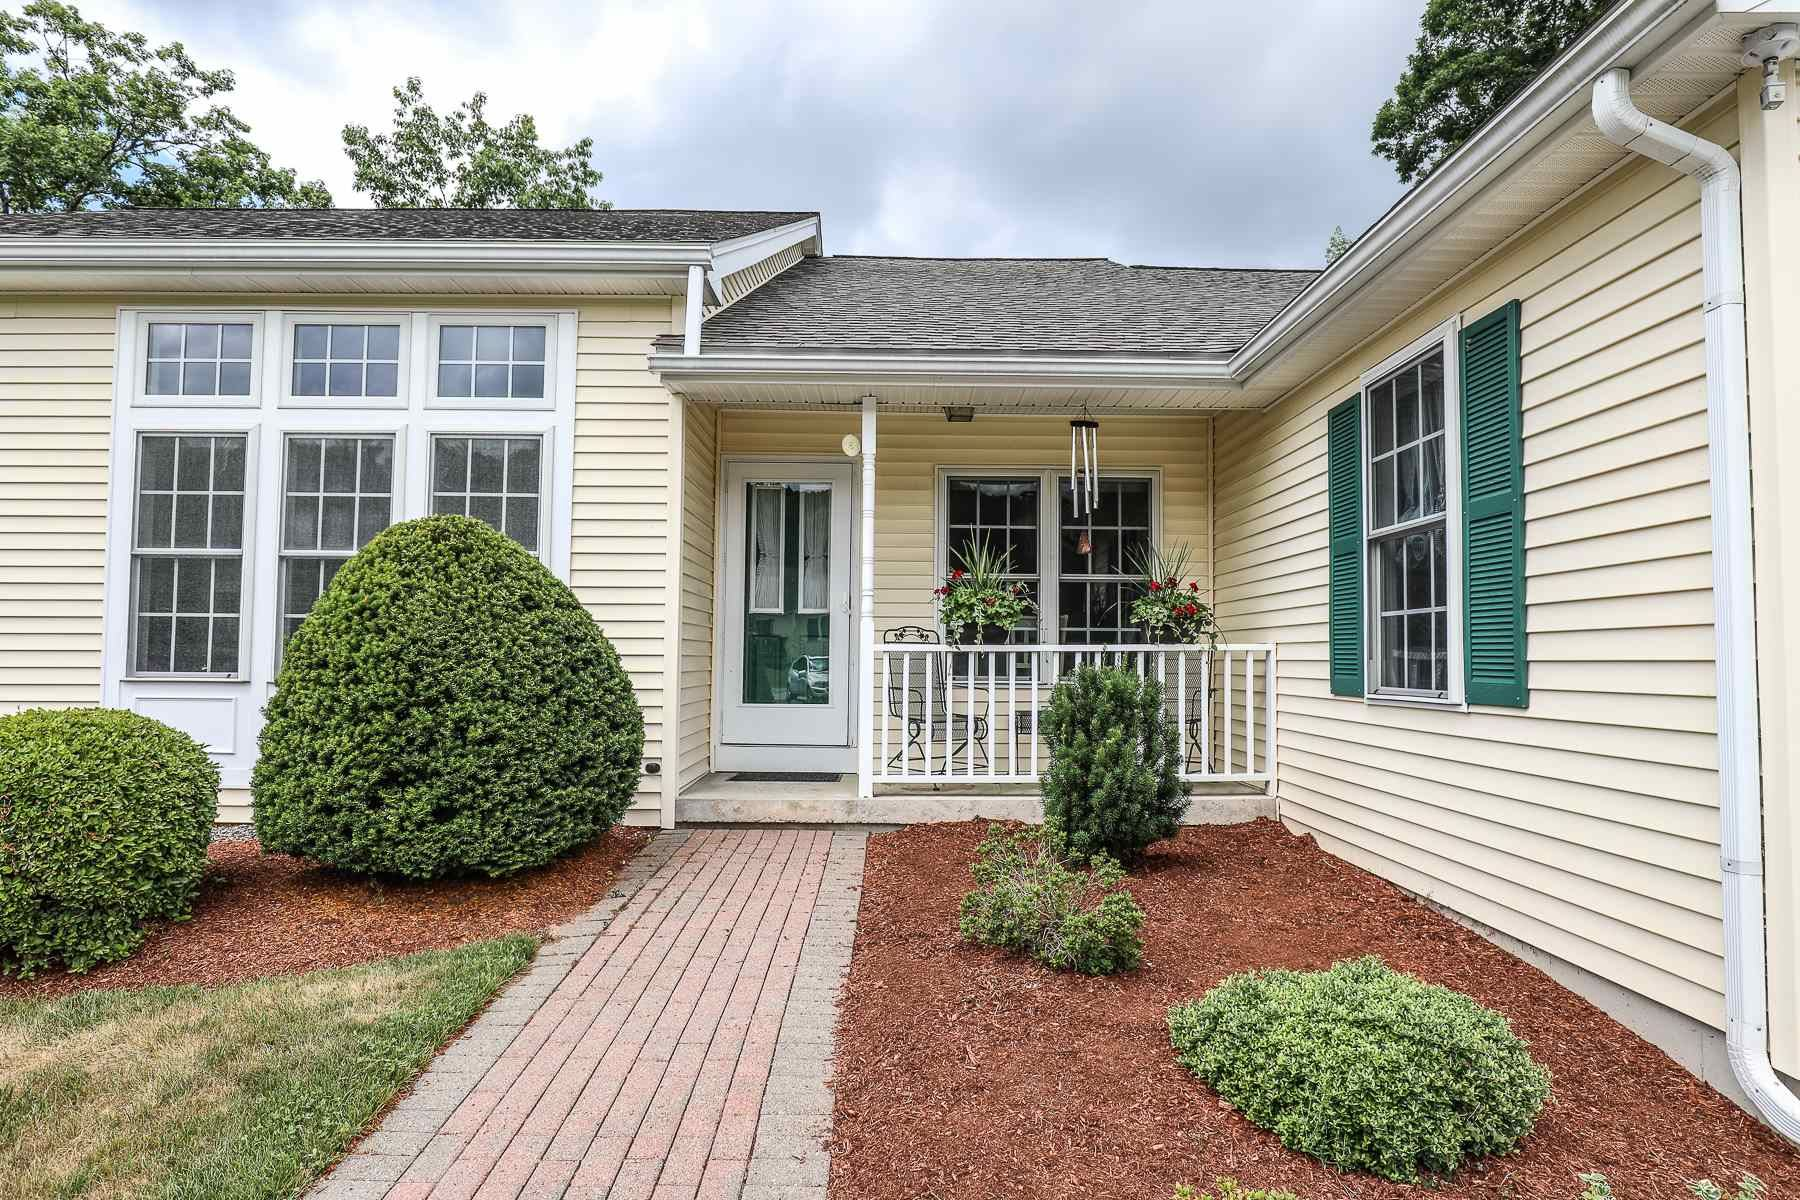 38 Lincoln Drive, Londonderry, NH 03053 - #: 4814415